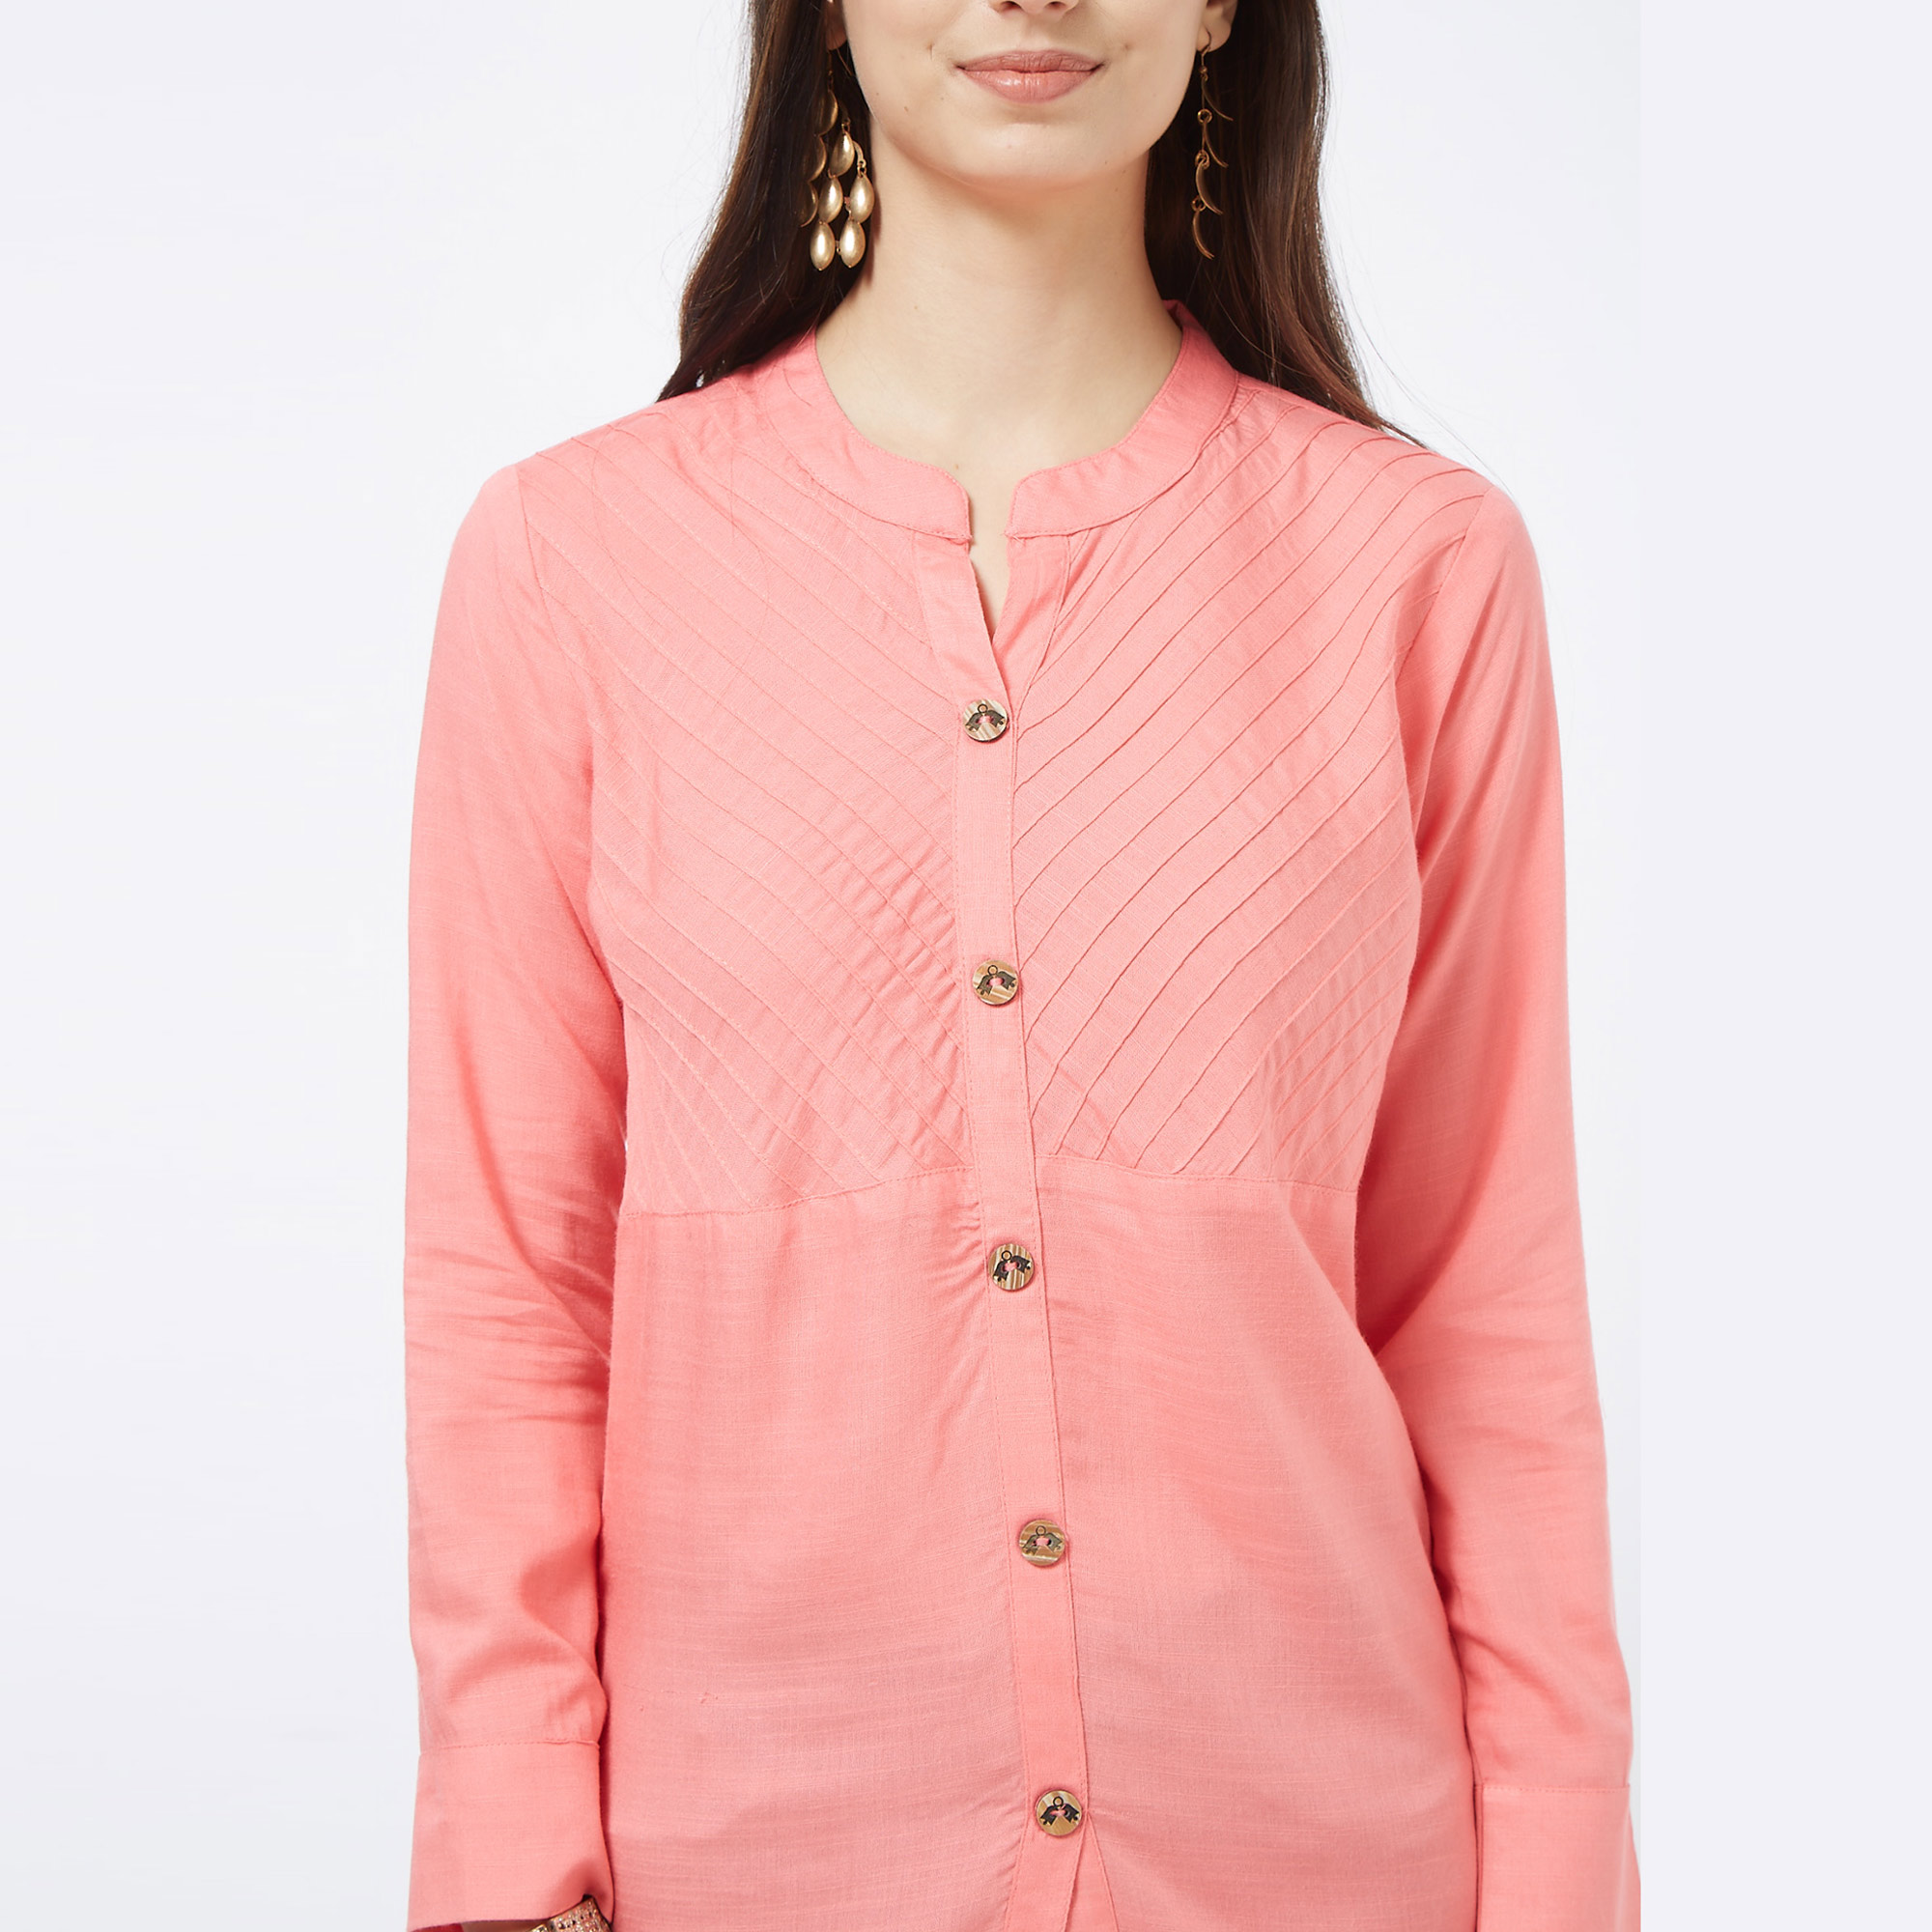 Desirable Pink Colored Casual Embroidered Cotton Short Kurti